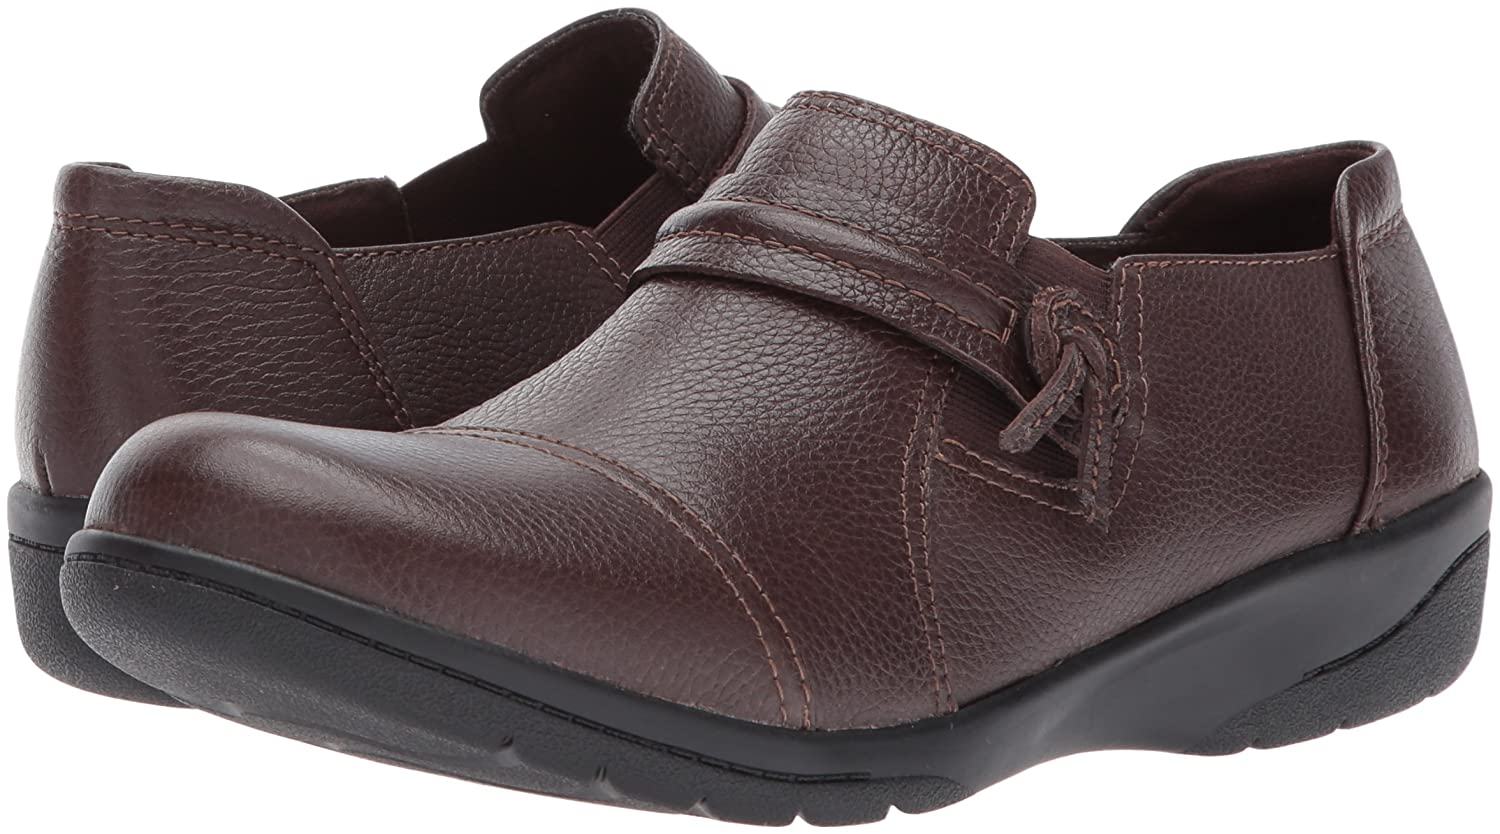 CLARKS Women's Cheyn Madi Loafer B01MRVTY19 7 Leather B(M) US|Dark Brown Tumbled Leather 7 8f86ff